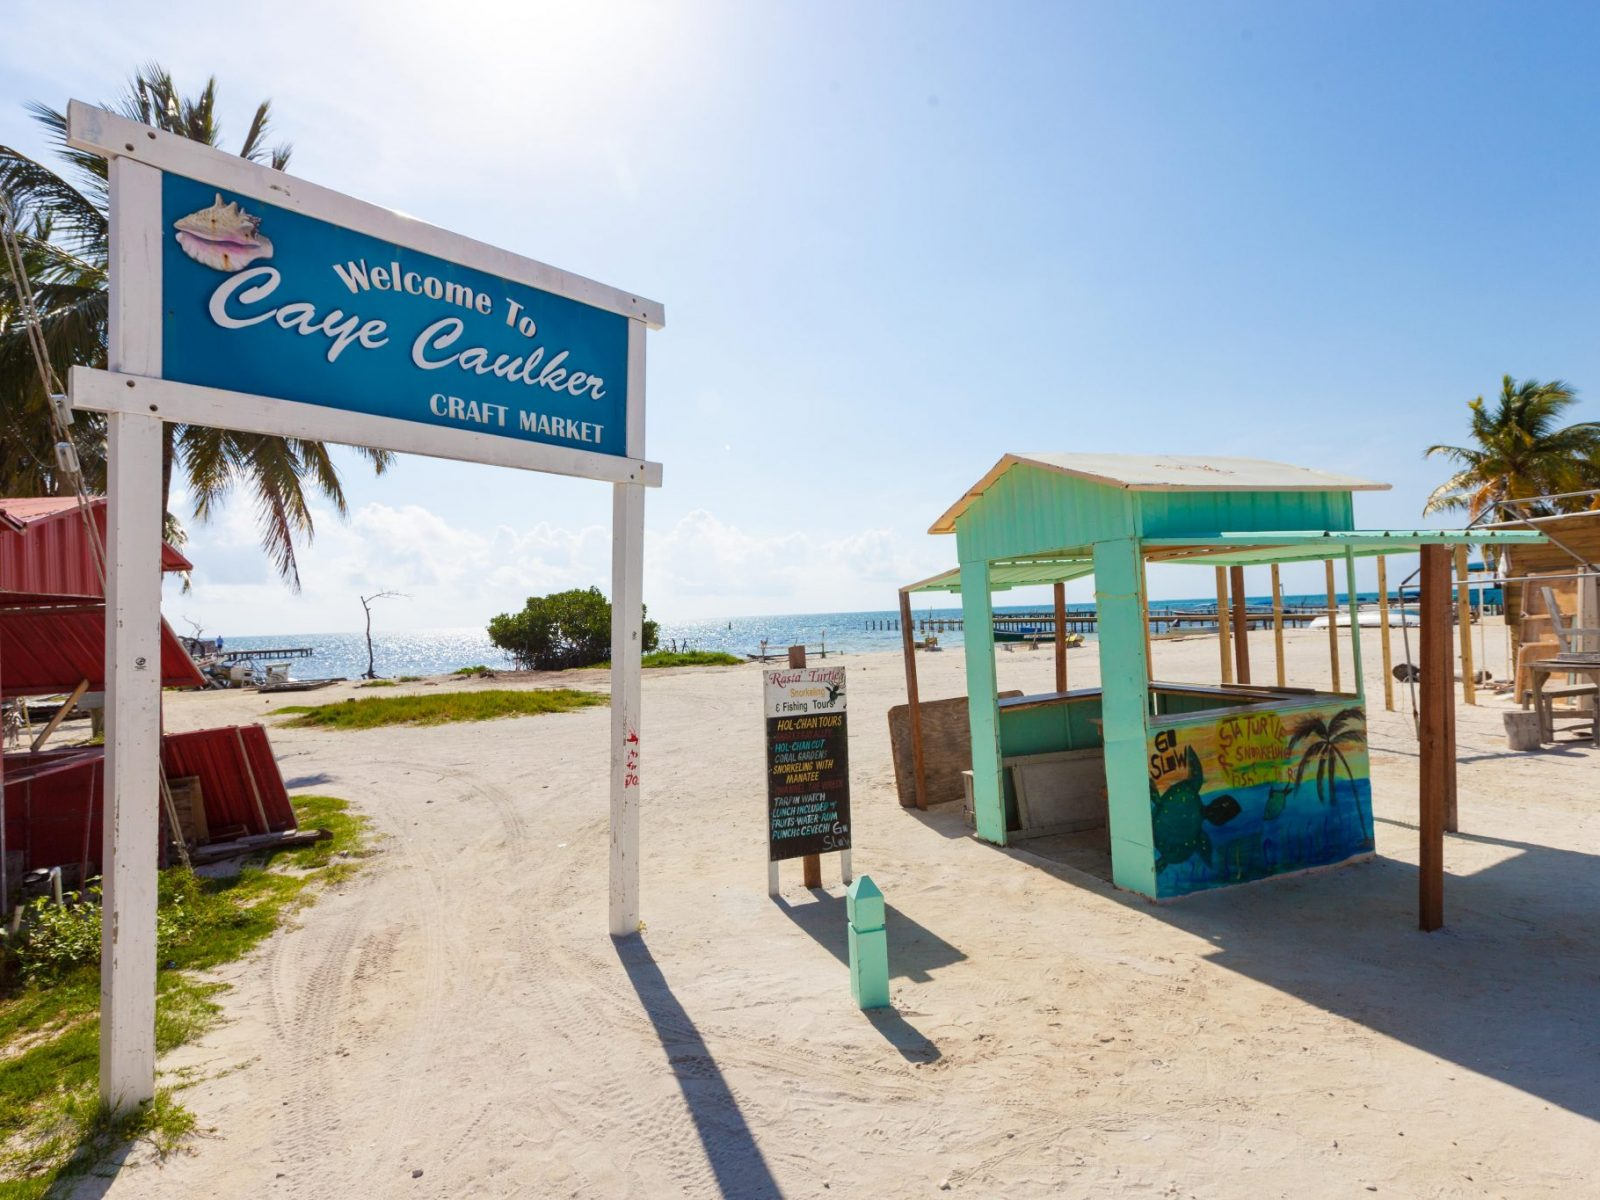 Going Slow Is A Way Of Life In Caye Caulker, Belize